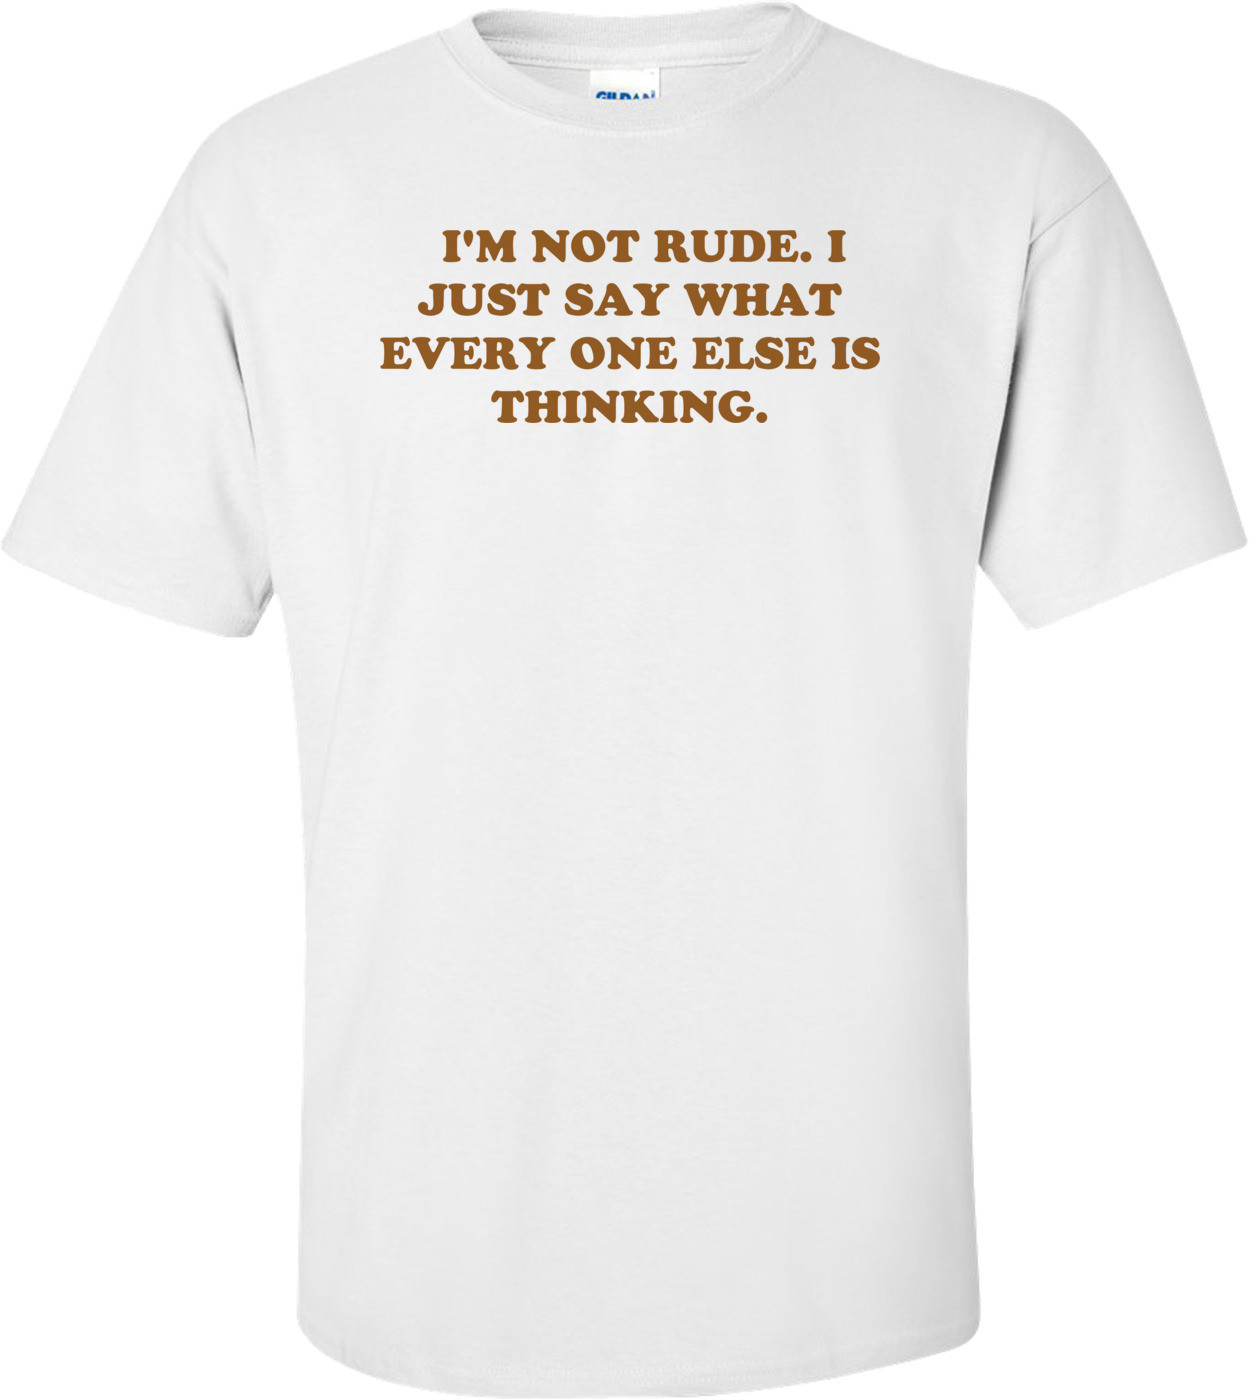 I'M NOT RUDE. I JUST SAY WHAT EVERY ONE ELSE IS THINKING. Shirt